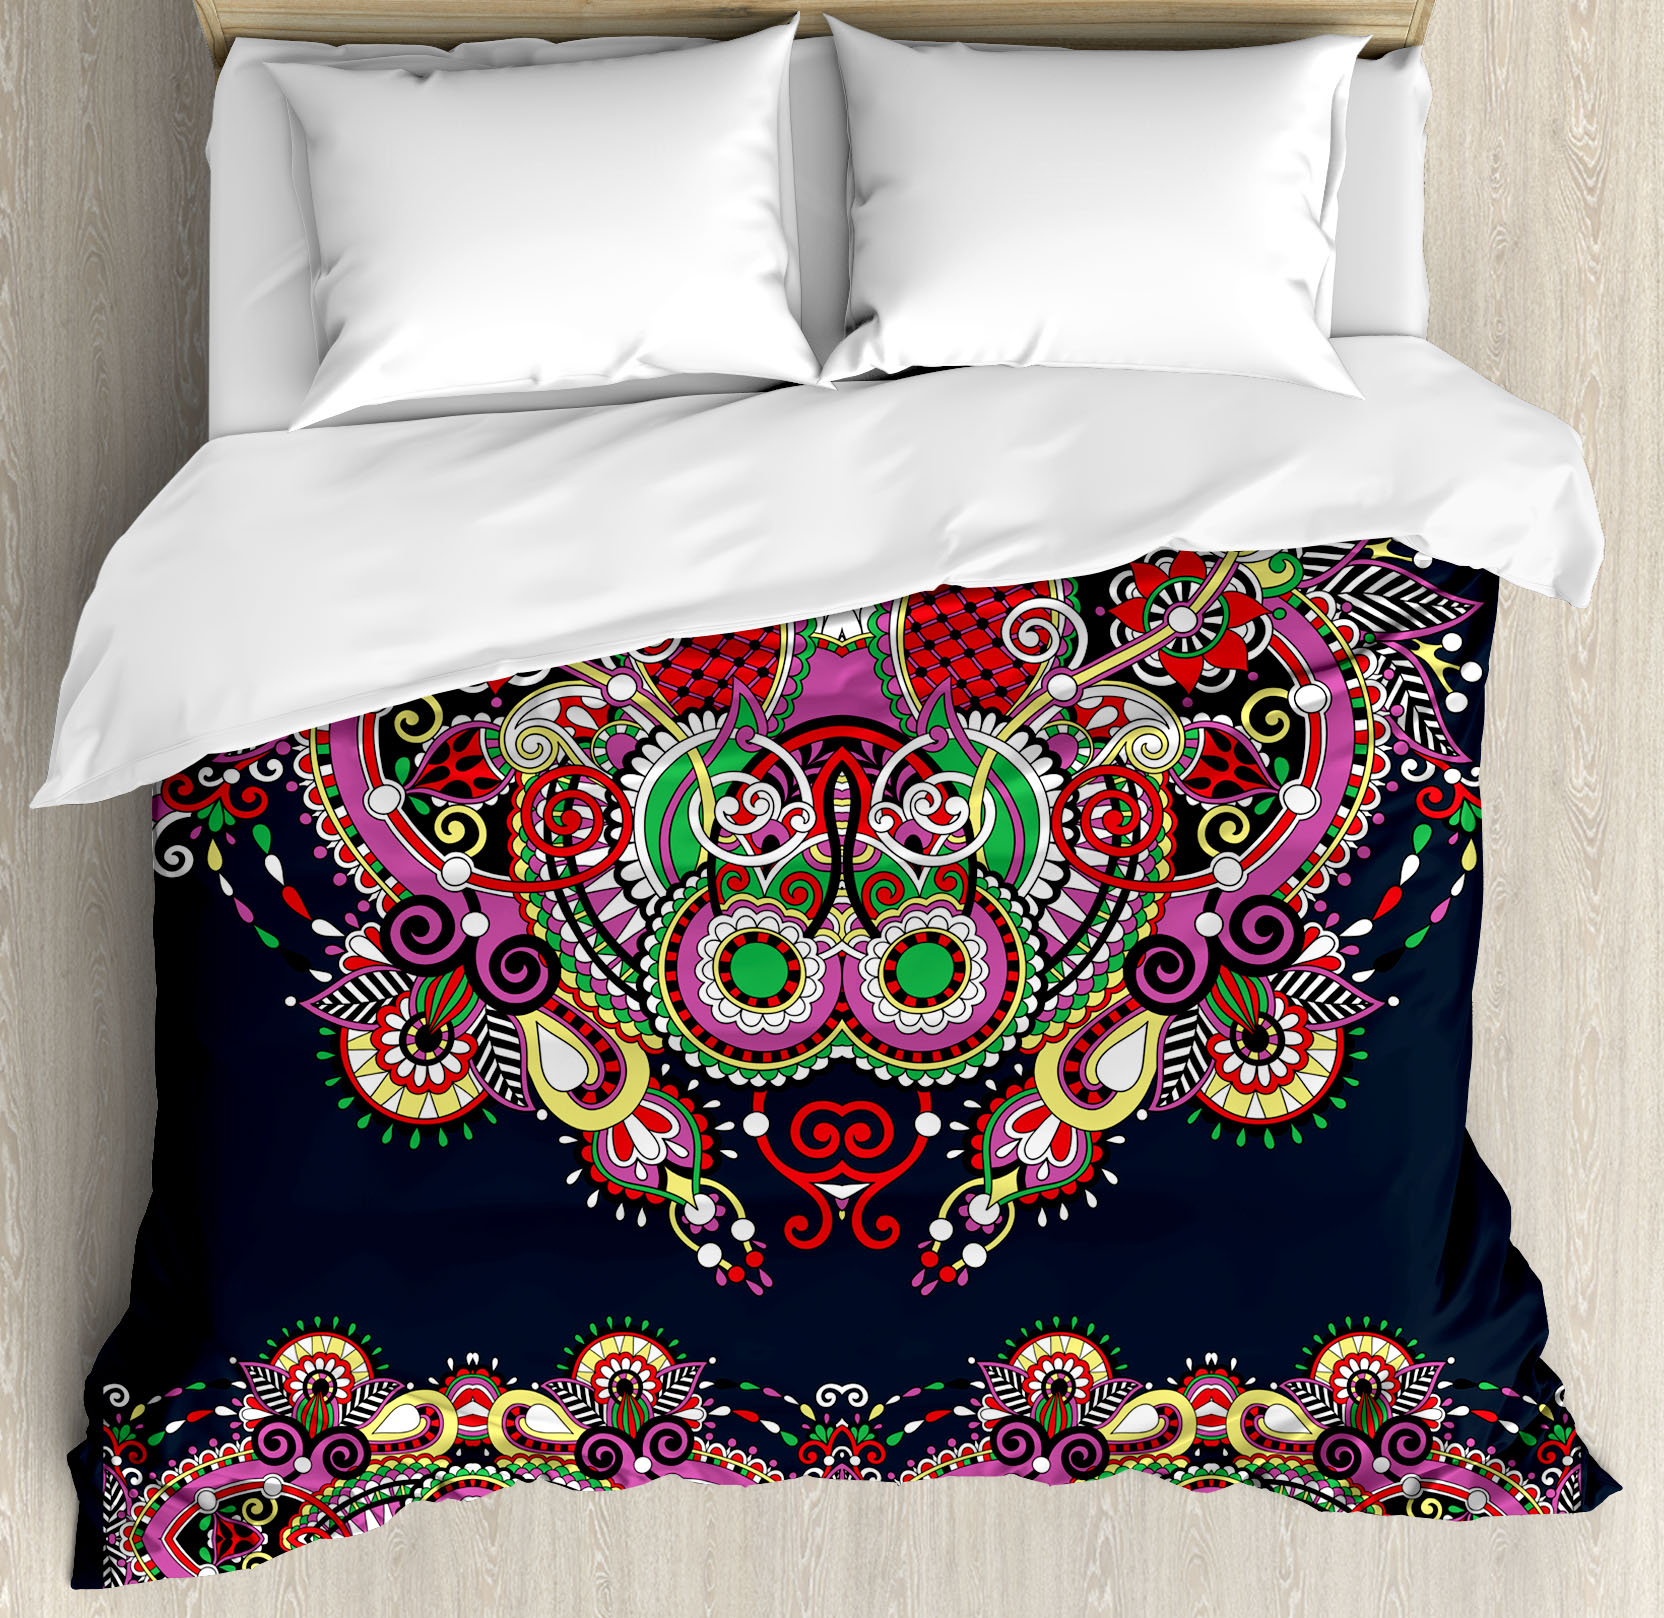 Ethnic Decor Queen Size Duvet Cover Set, Ukrainian Embroidery Fashioned Ornate Paisley with Unique Features Motif, Decorative 3 Piece Bedding Set with 2 Pillow Shams, Violet Dark Grey, by Ambesonne